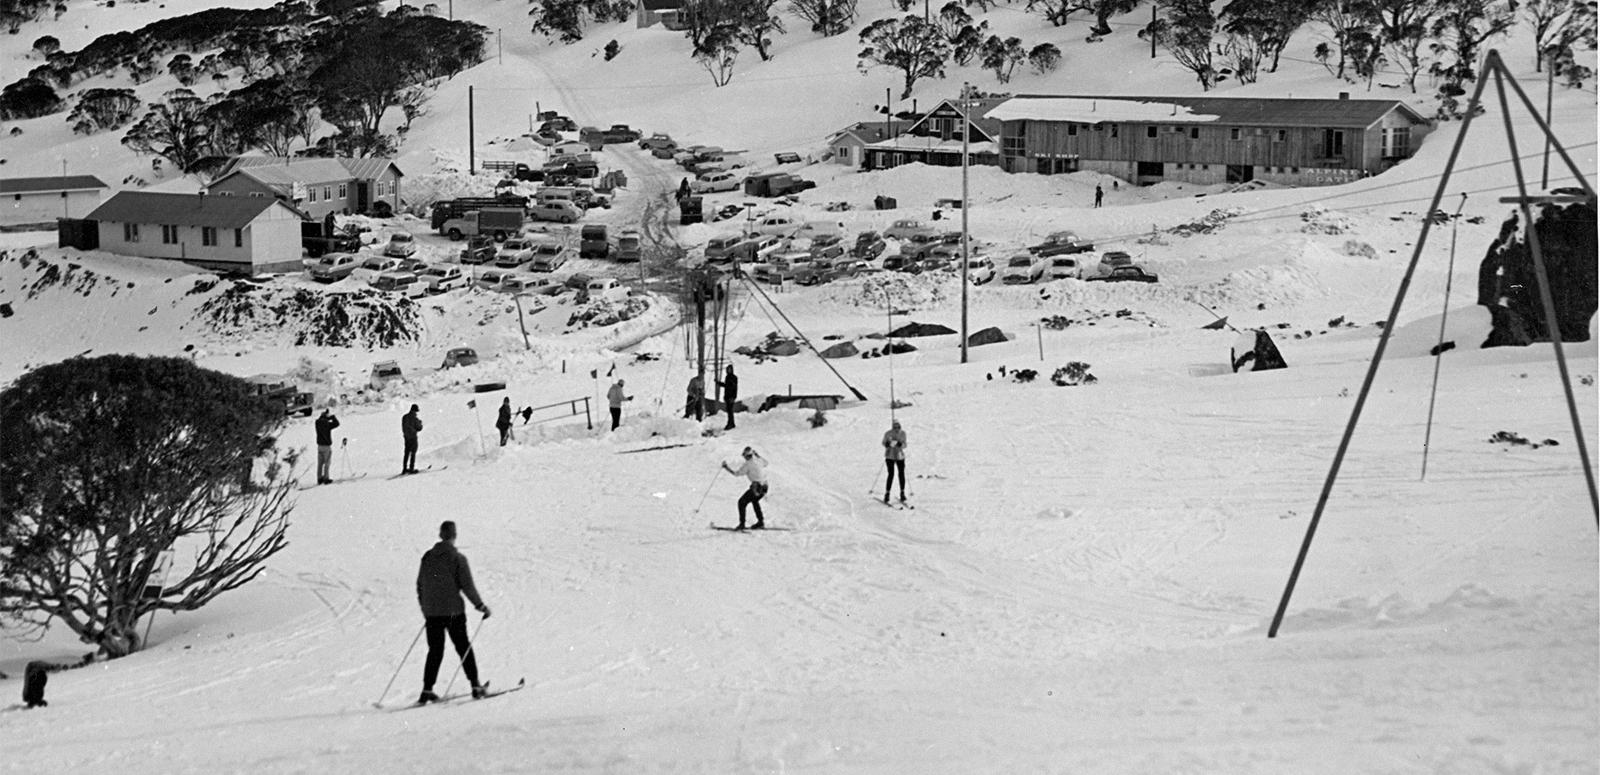 Skiers skiing down a slope in the early 1960s